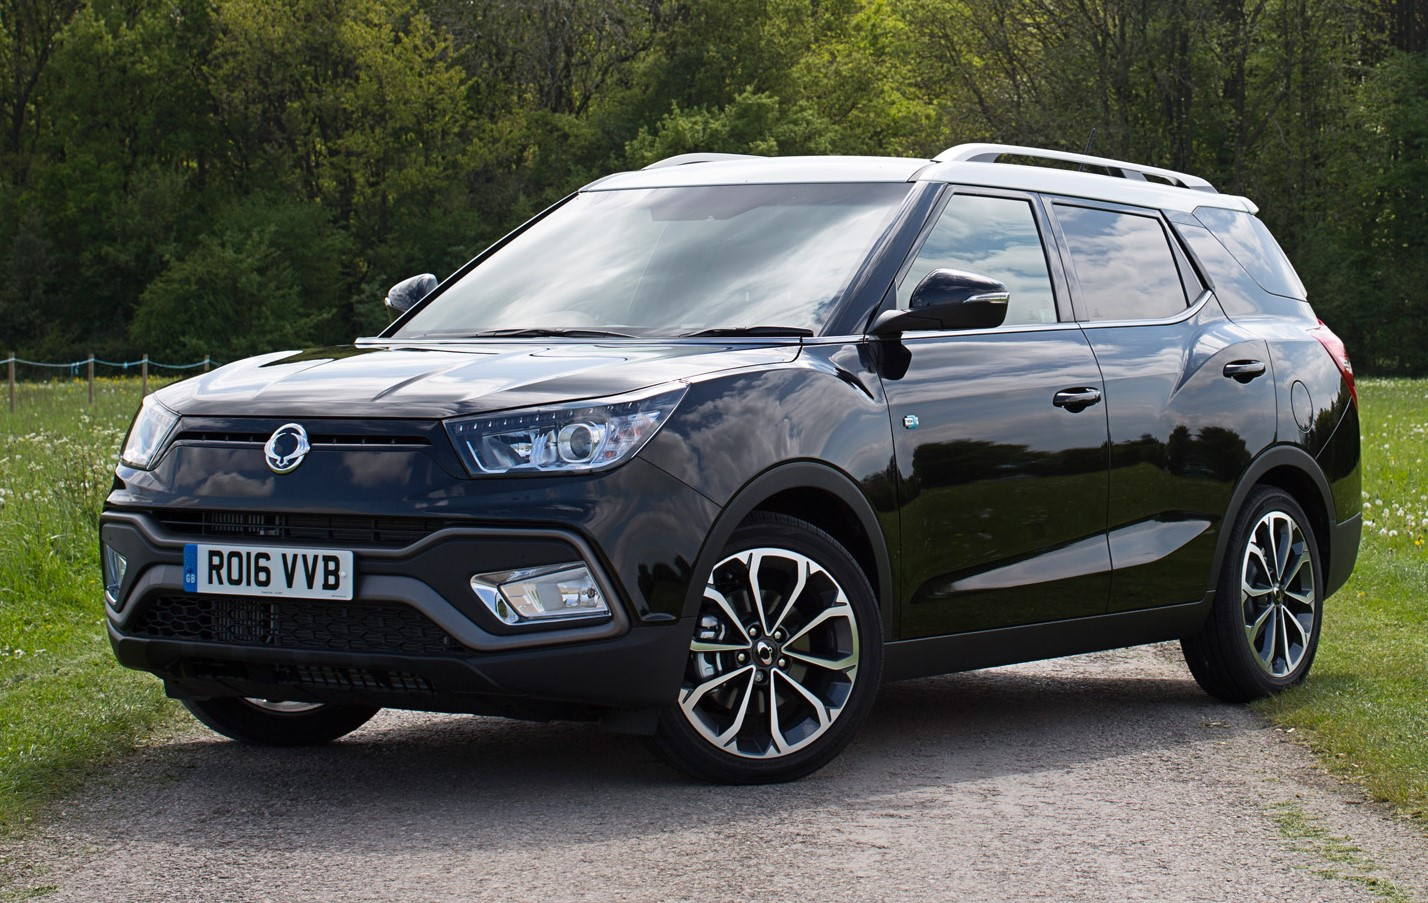 ssangyong launches tivoli xlv. Black Bedroom Furniture Sets. Home Design Ideas